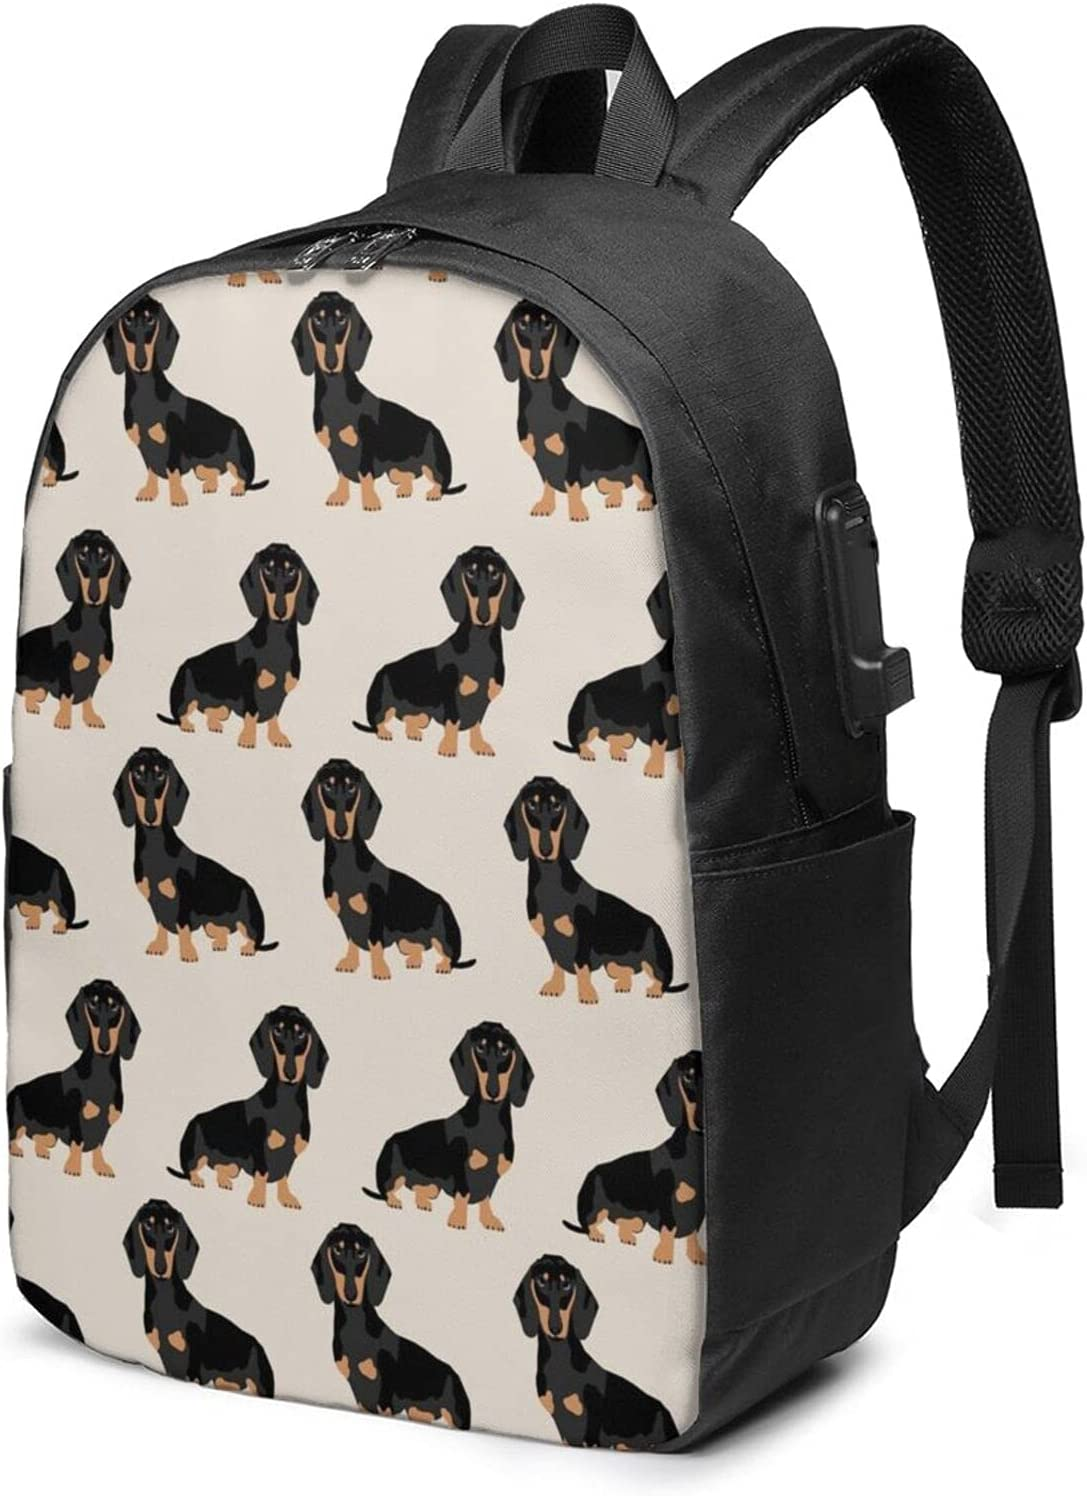 Wiener Dog Pet Animal Laptop Daypack Las Vegas Mall Backpack with For low-pricing Adult